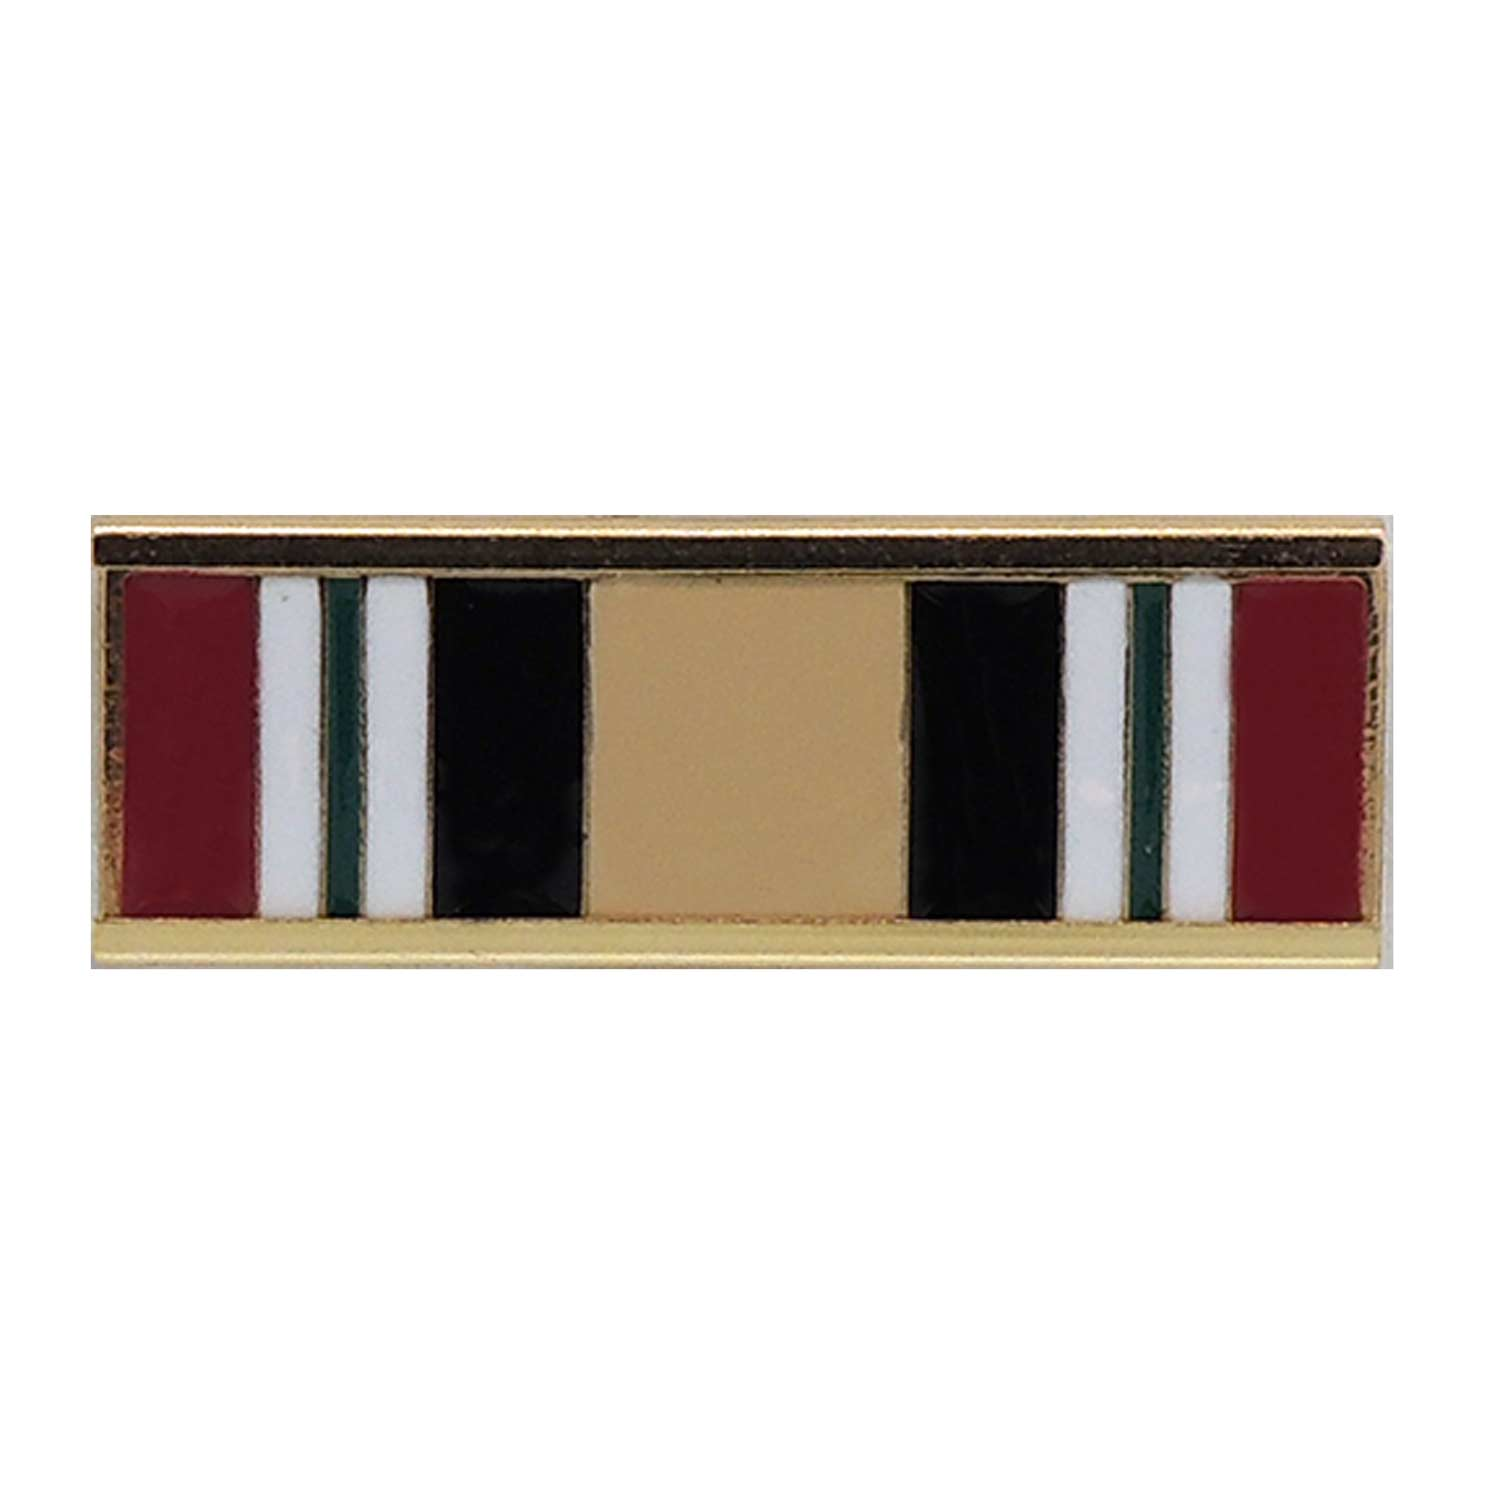 J206-IRQ SEVEN SECTION IRAQ COMMENDATION BAR